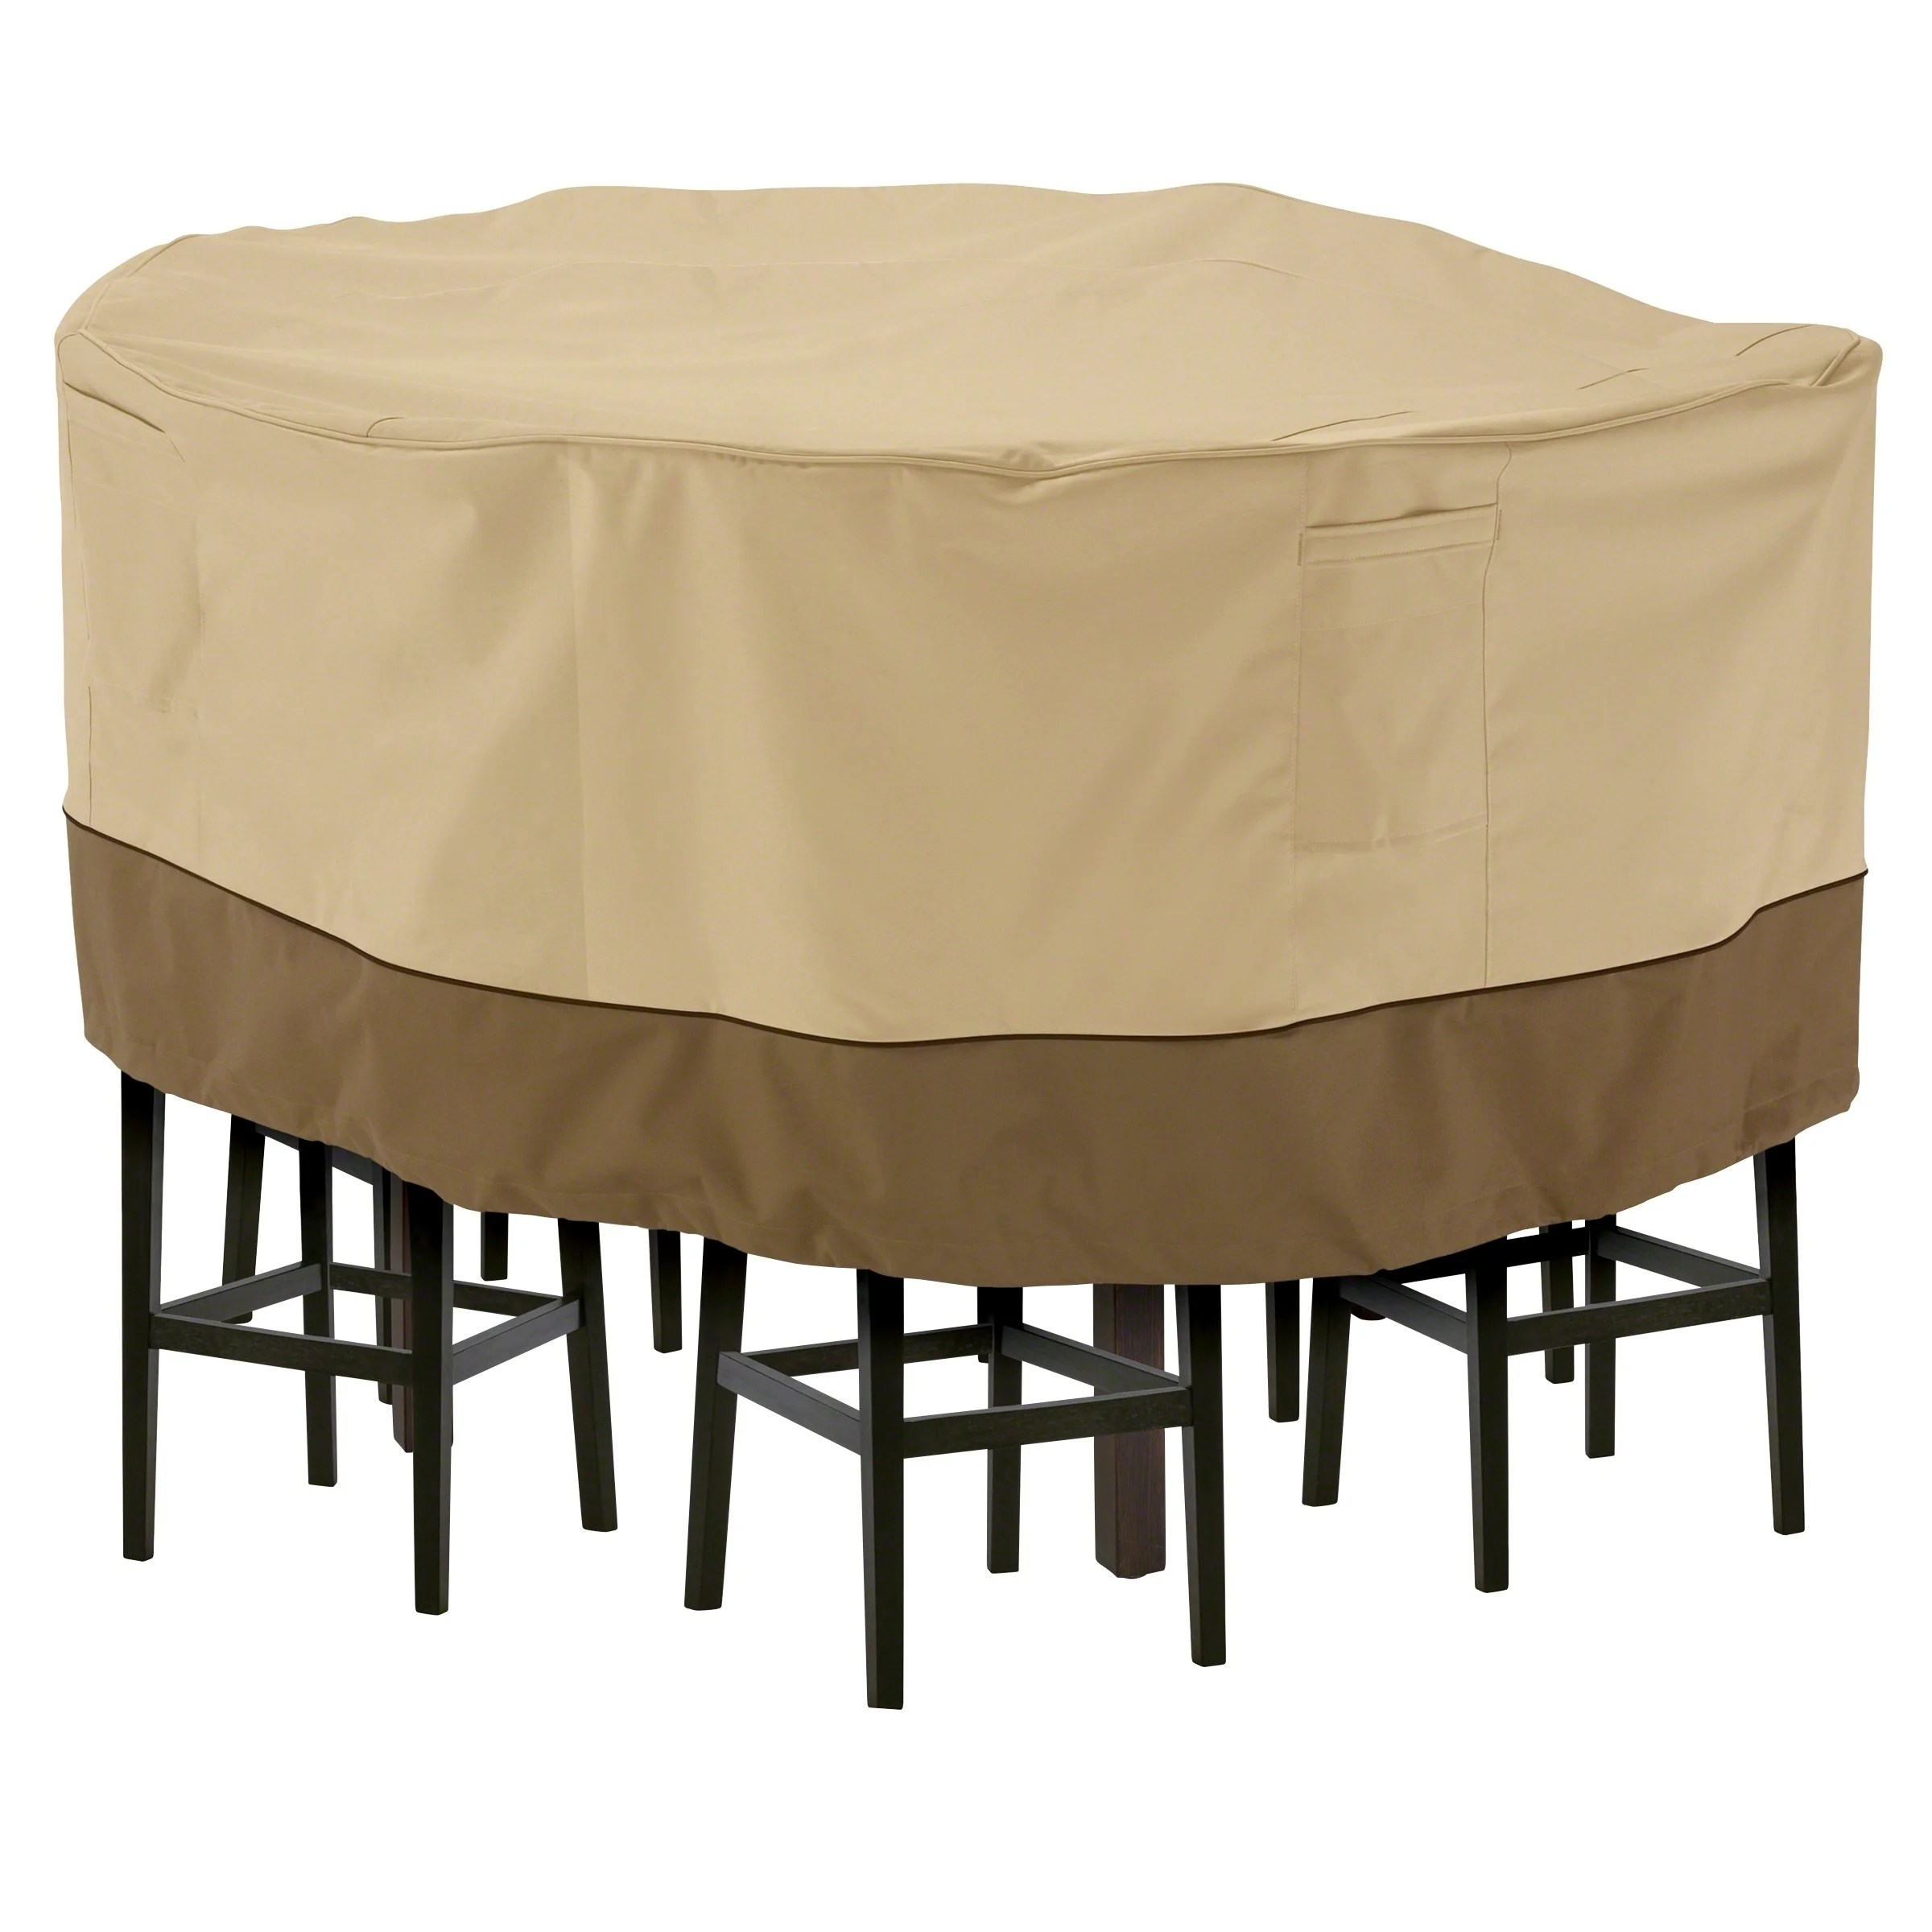 tall patio table and chair cover leather chairs dining room buy furniture covers online at overstock our